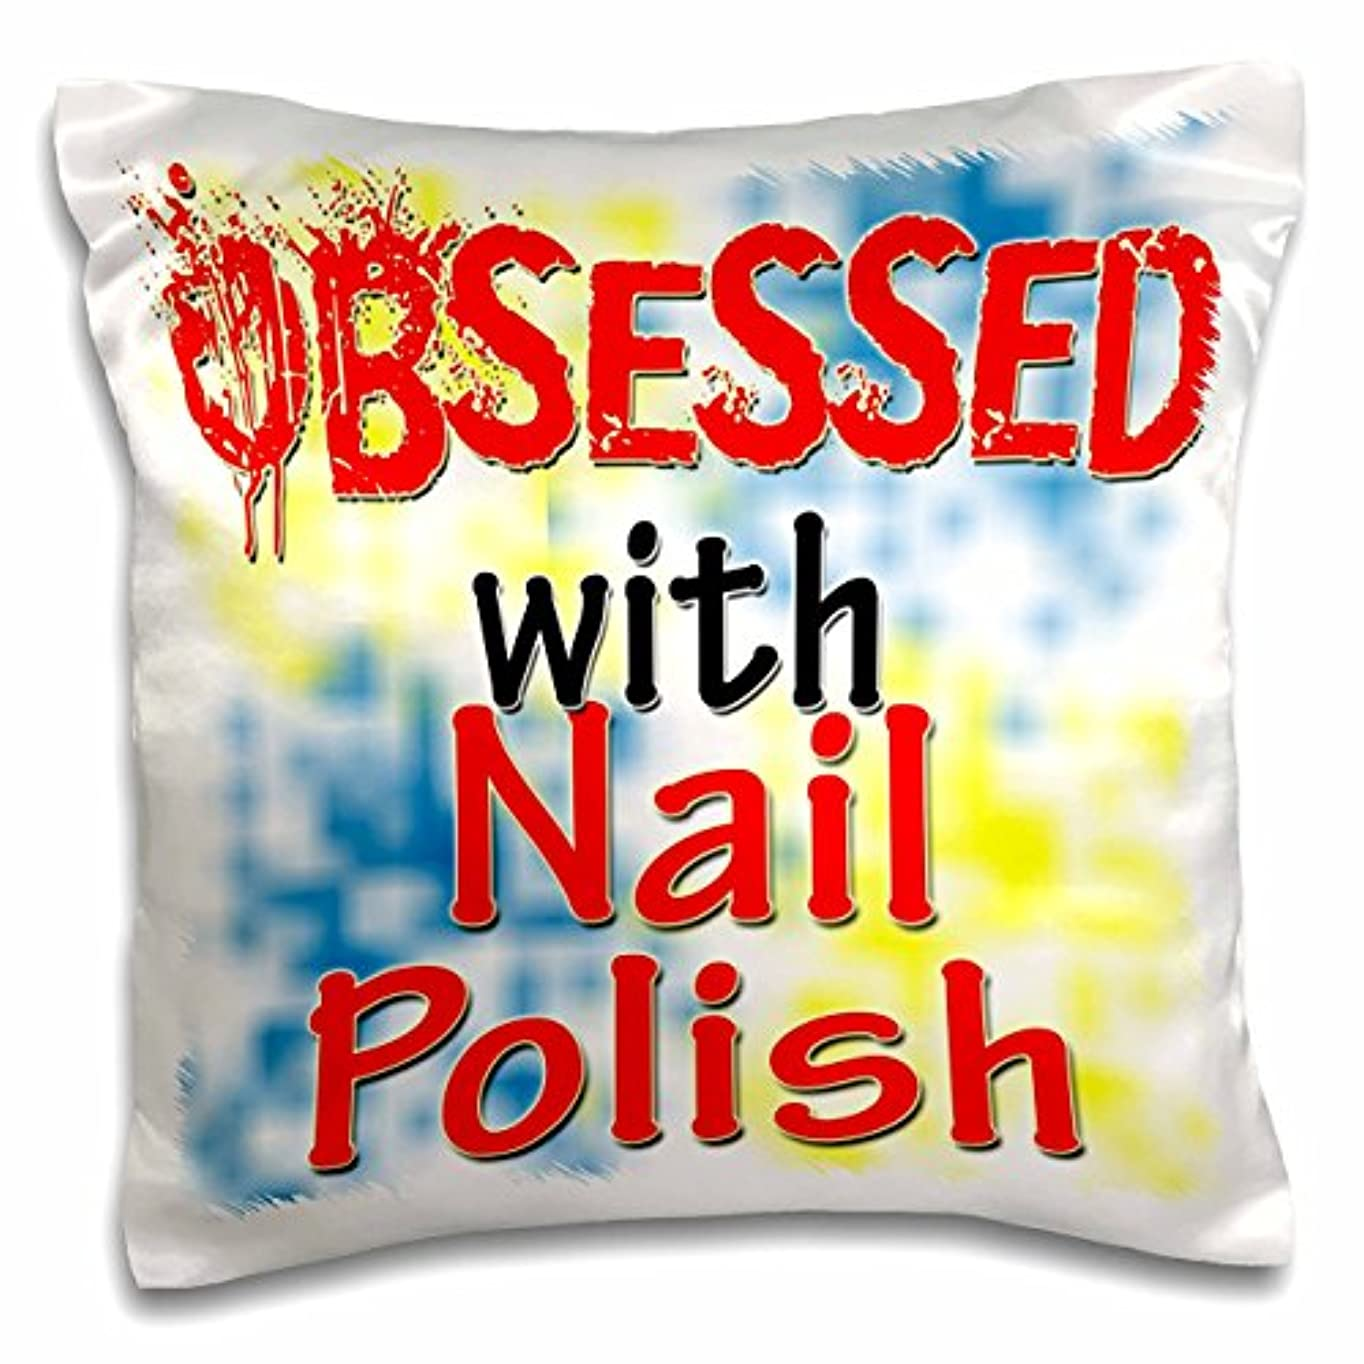 ハードレイプ式3droseブロンドDesigns Obsessed with – Obsessed with Nail Polish – 枕ケース 16